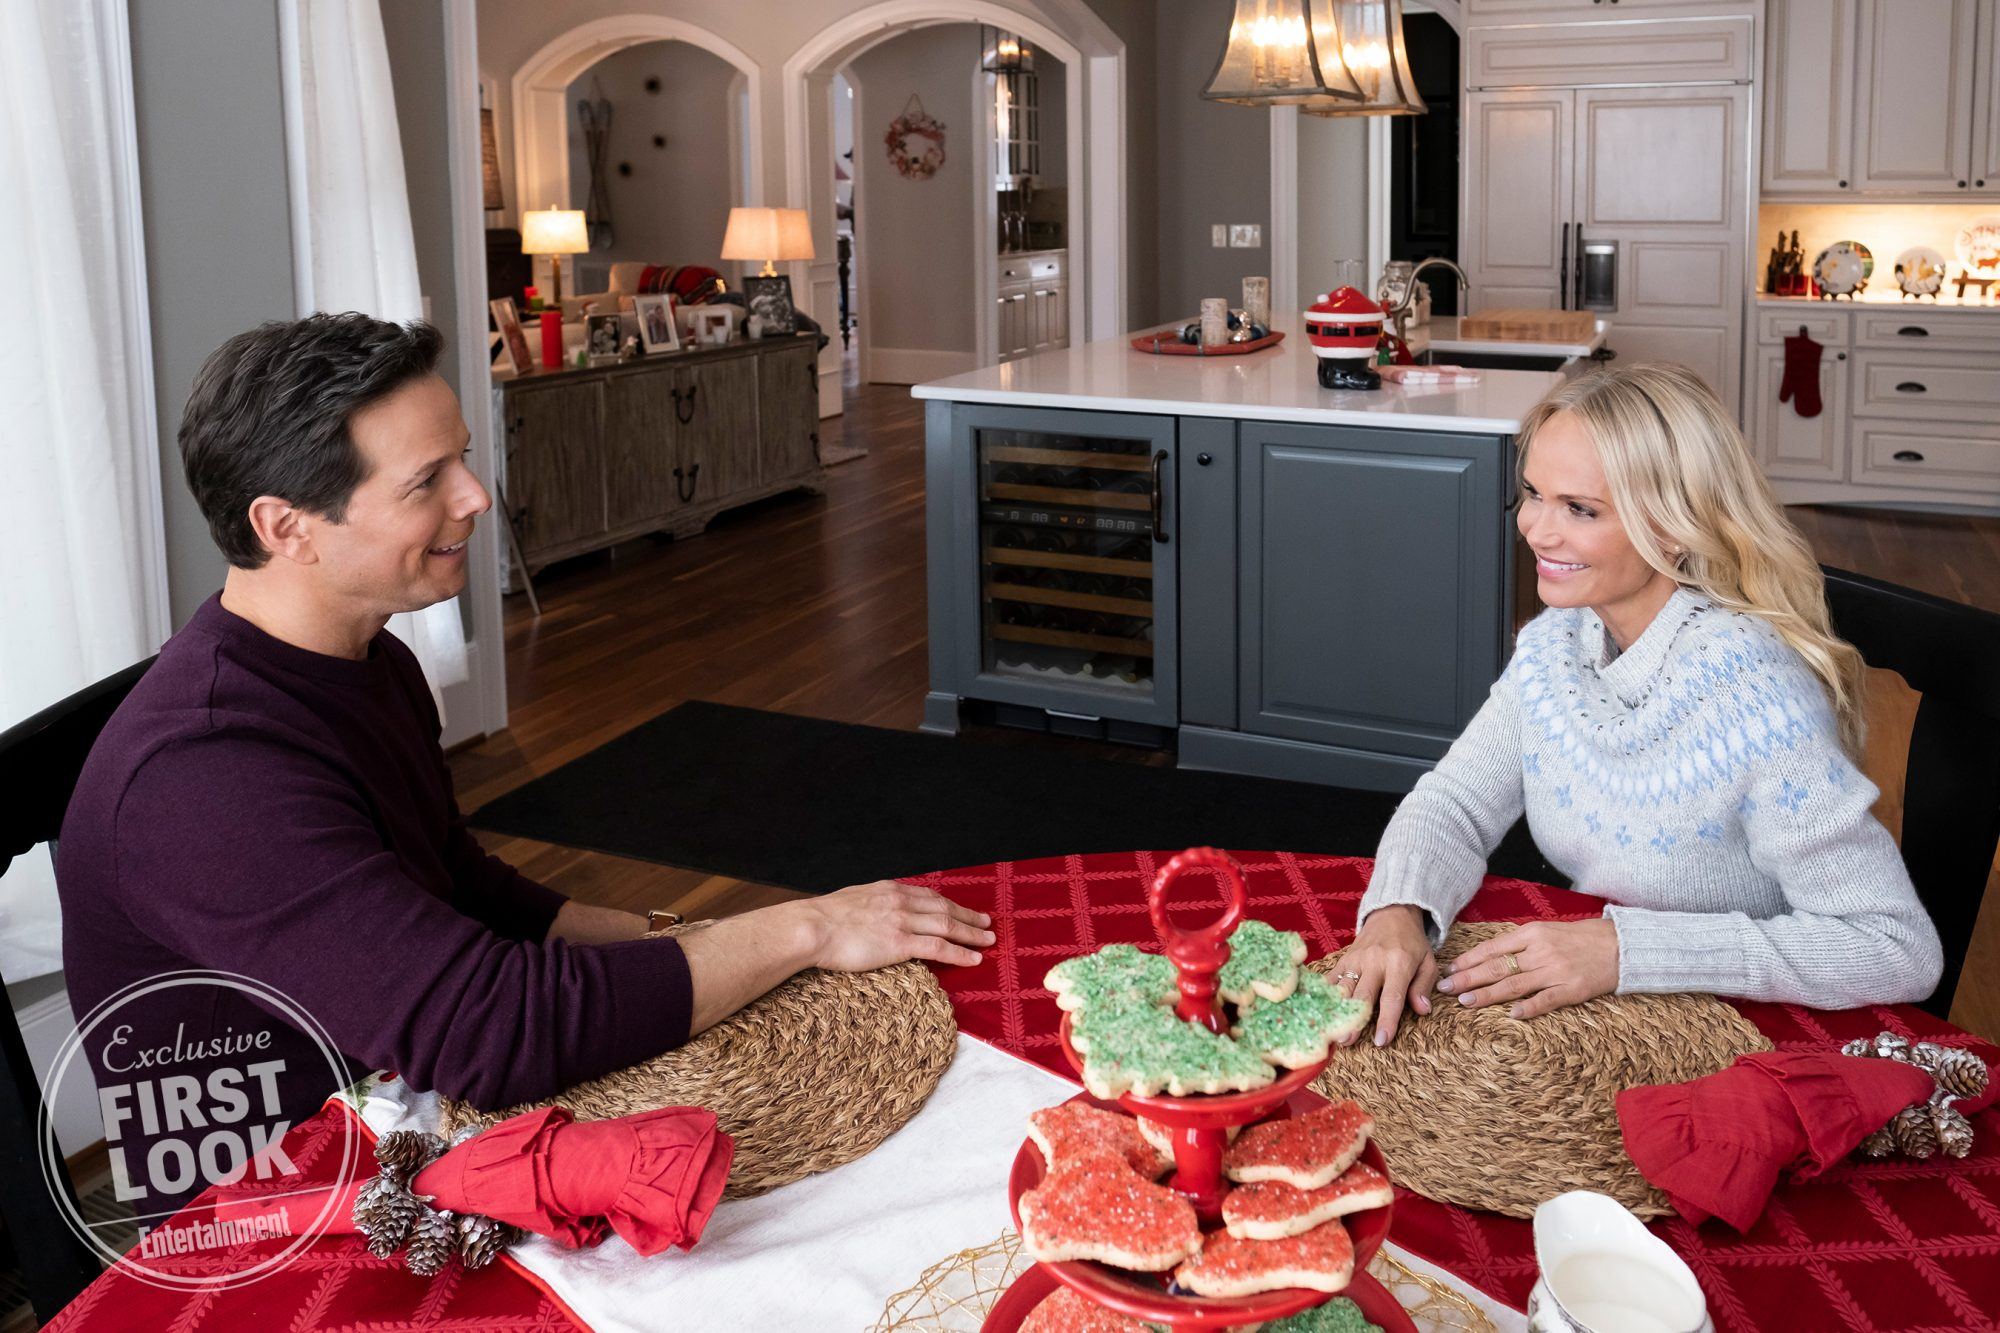 Hallmark will air 40 new Christmas TV movies this year